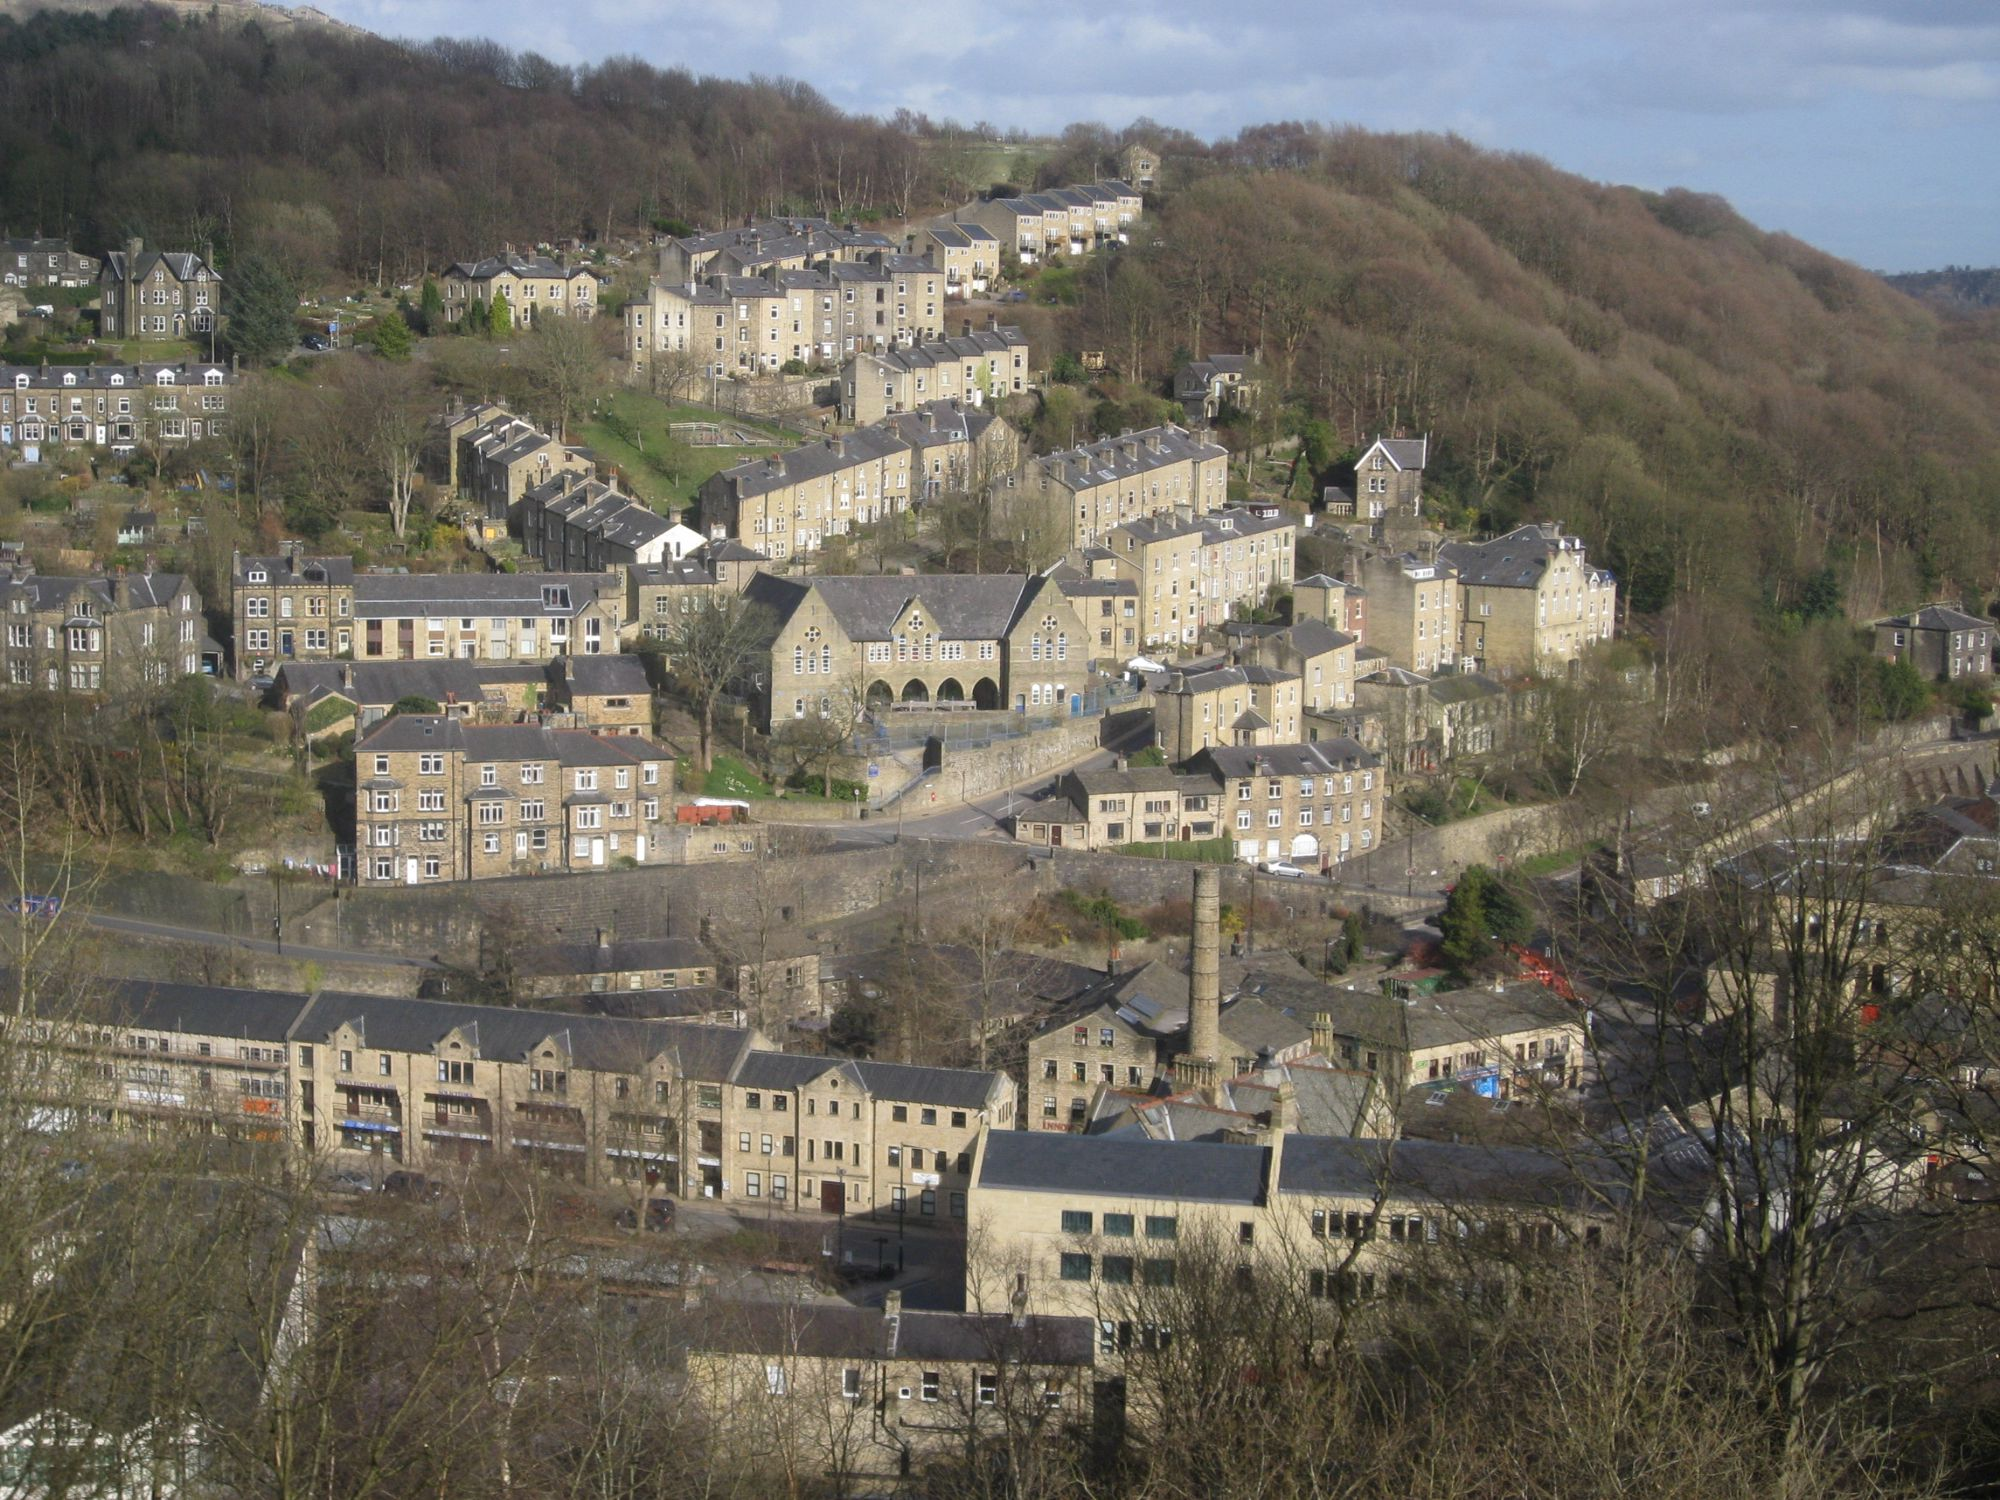 Hotels, B&Bs & Self-Catering in Hebden Bridge - Cool Places to Stay in the UK